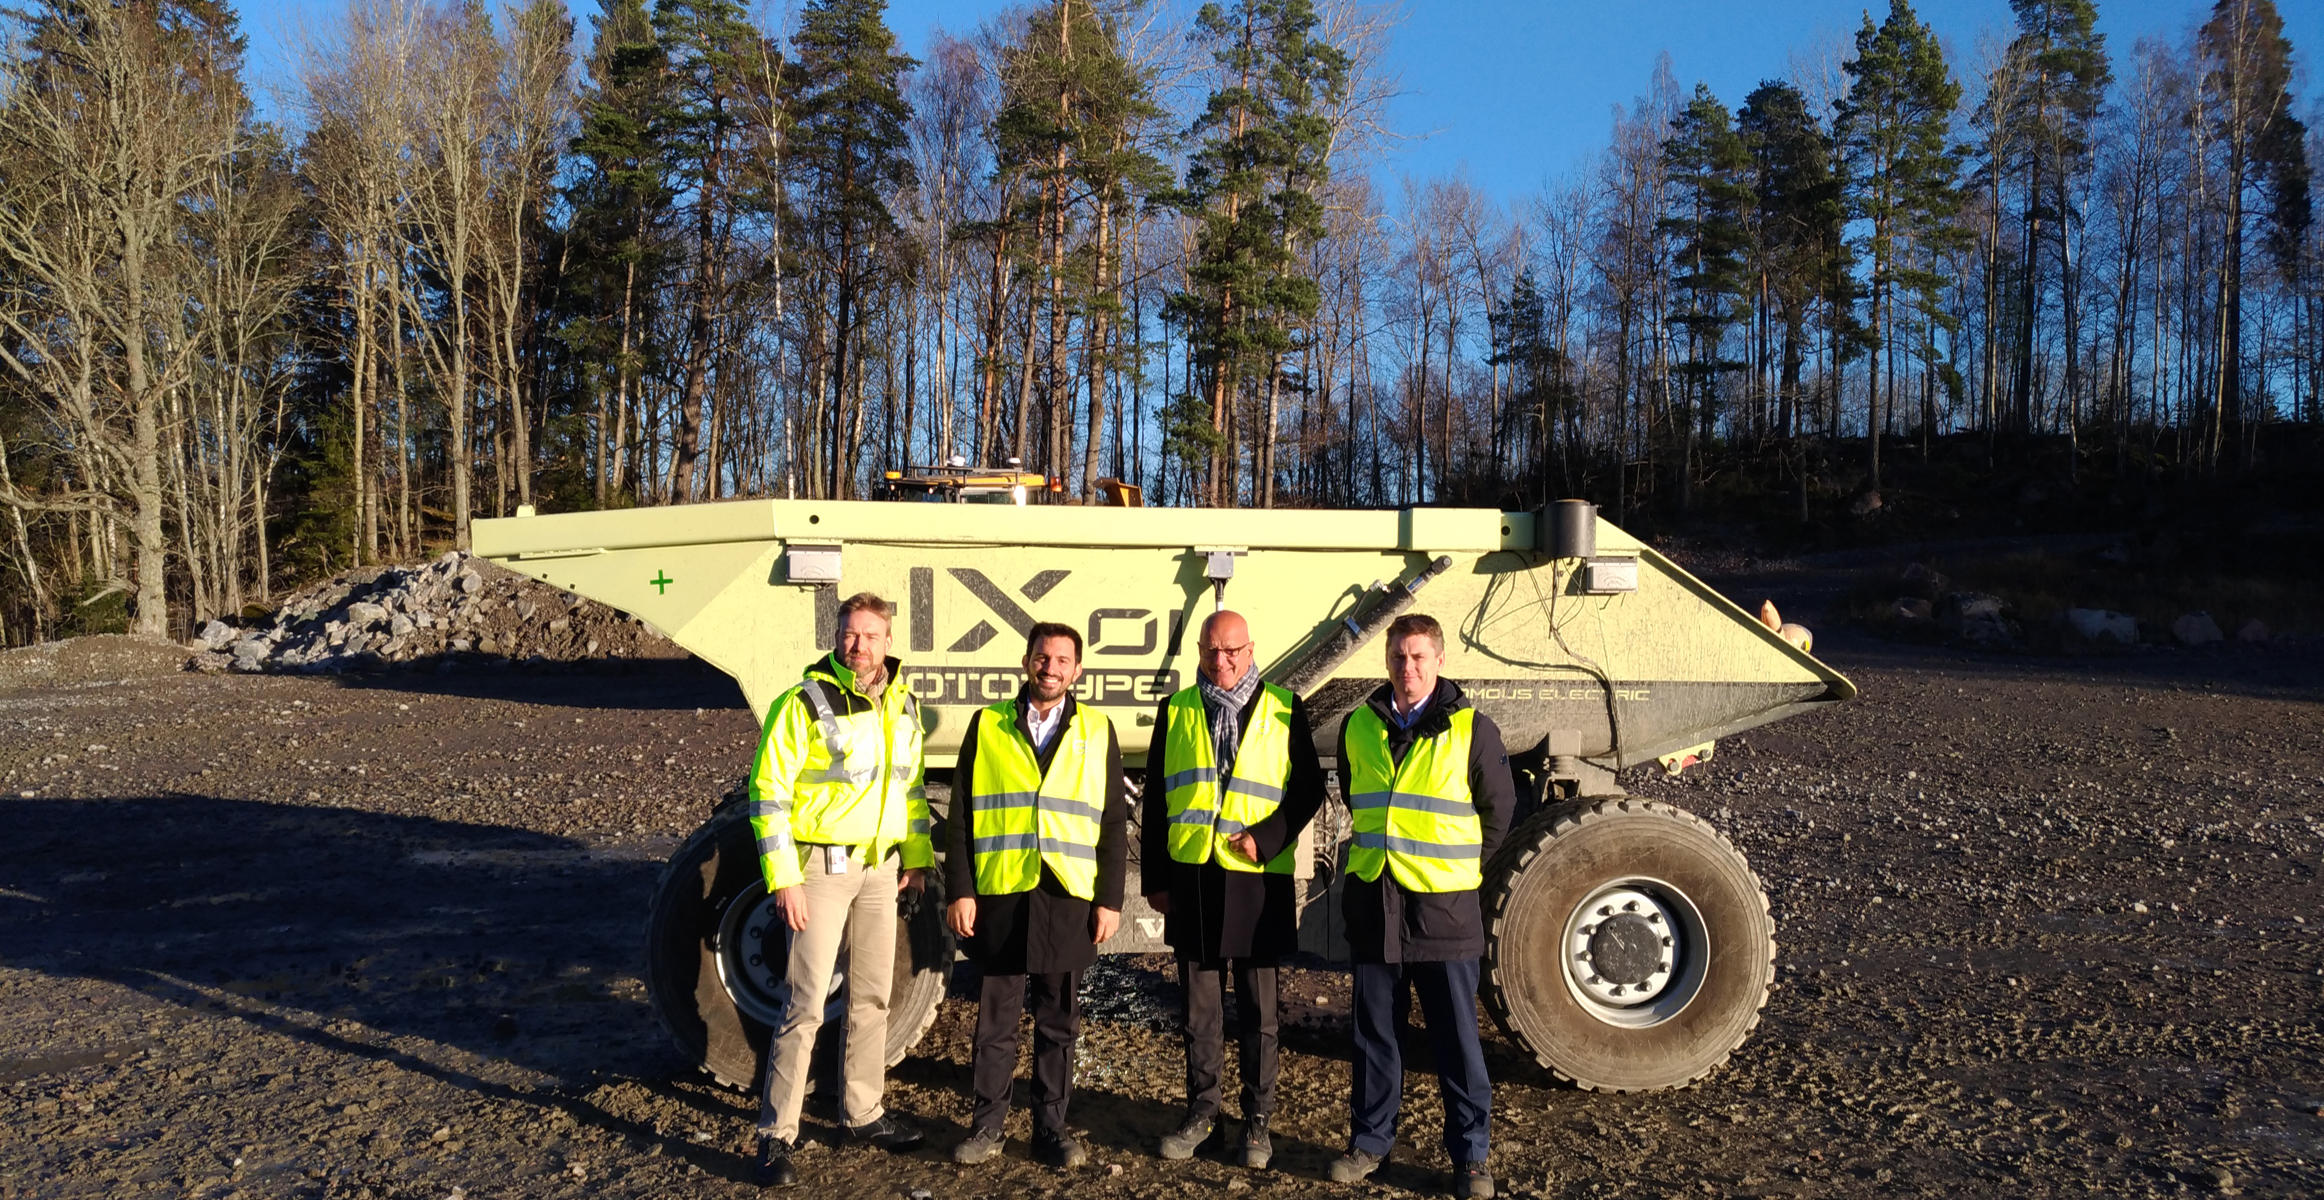 cece-secretary-general-visits-volvo-ce-facilities-in-eskilstuna-02-2324x1200